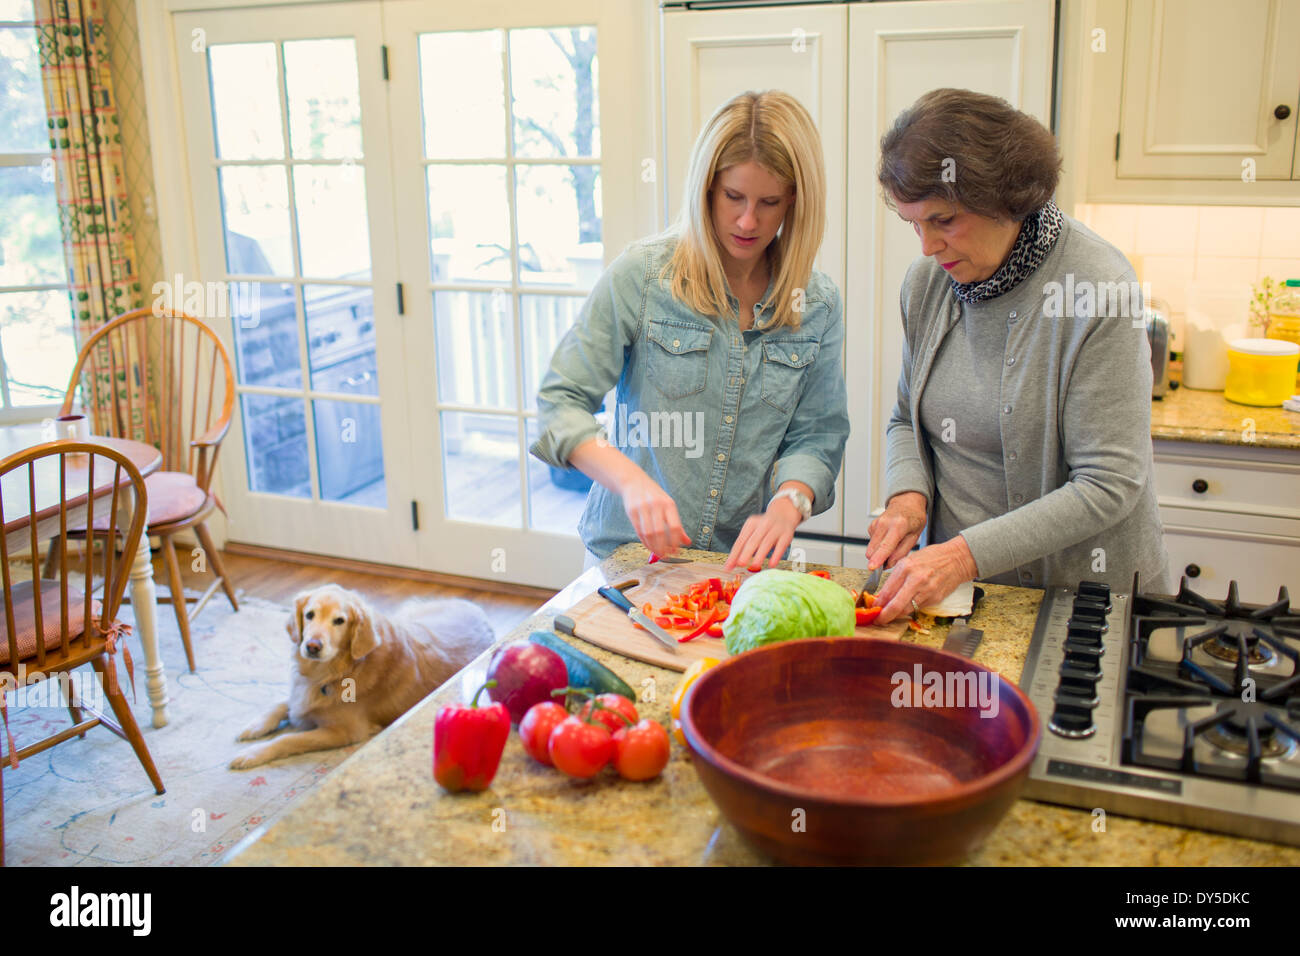 Senior woman and granddaughter chopping vegetables for salad bowl - Stock Image